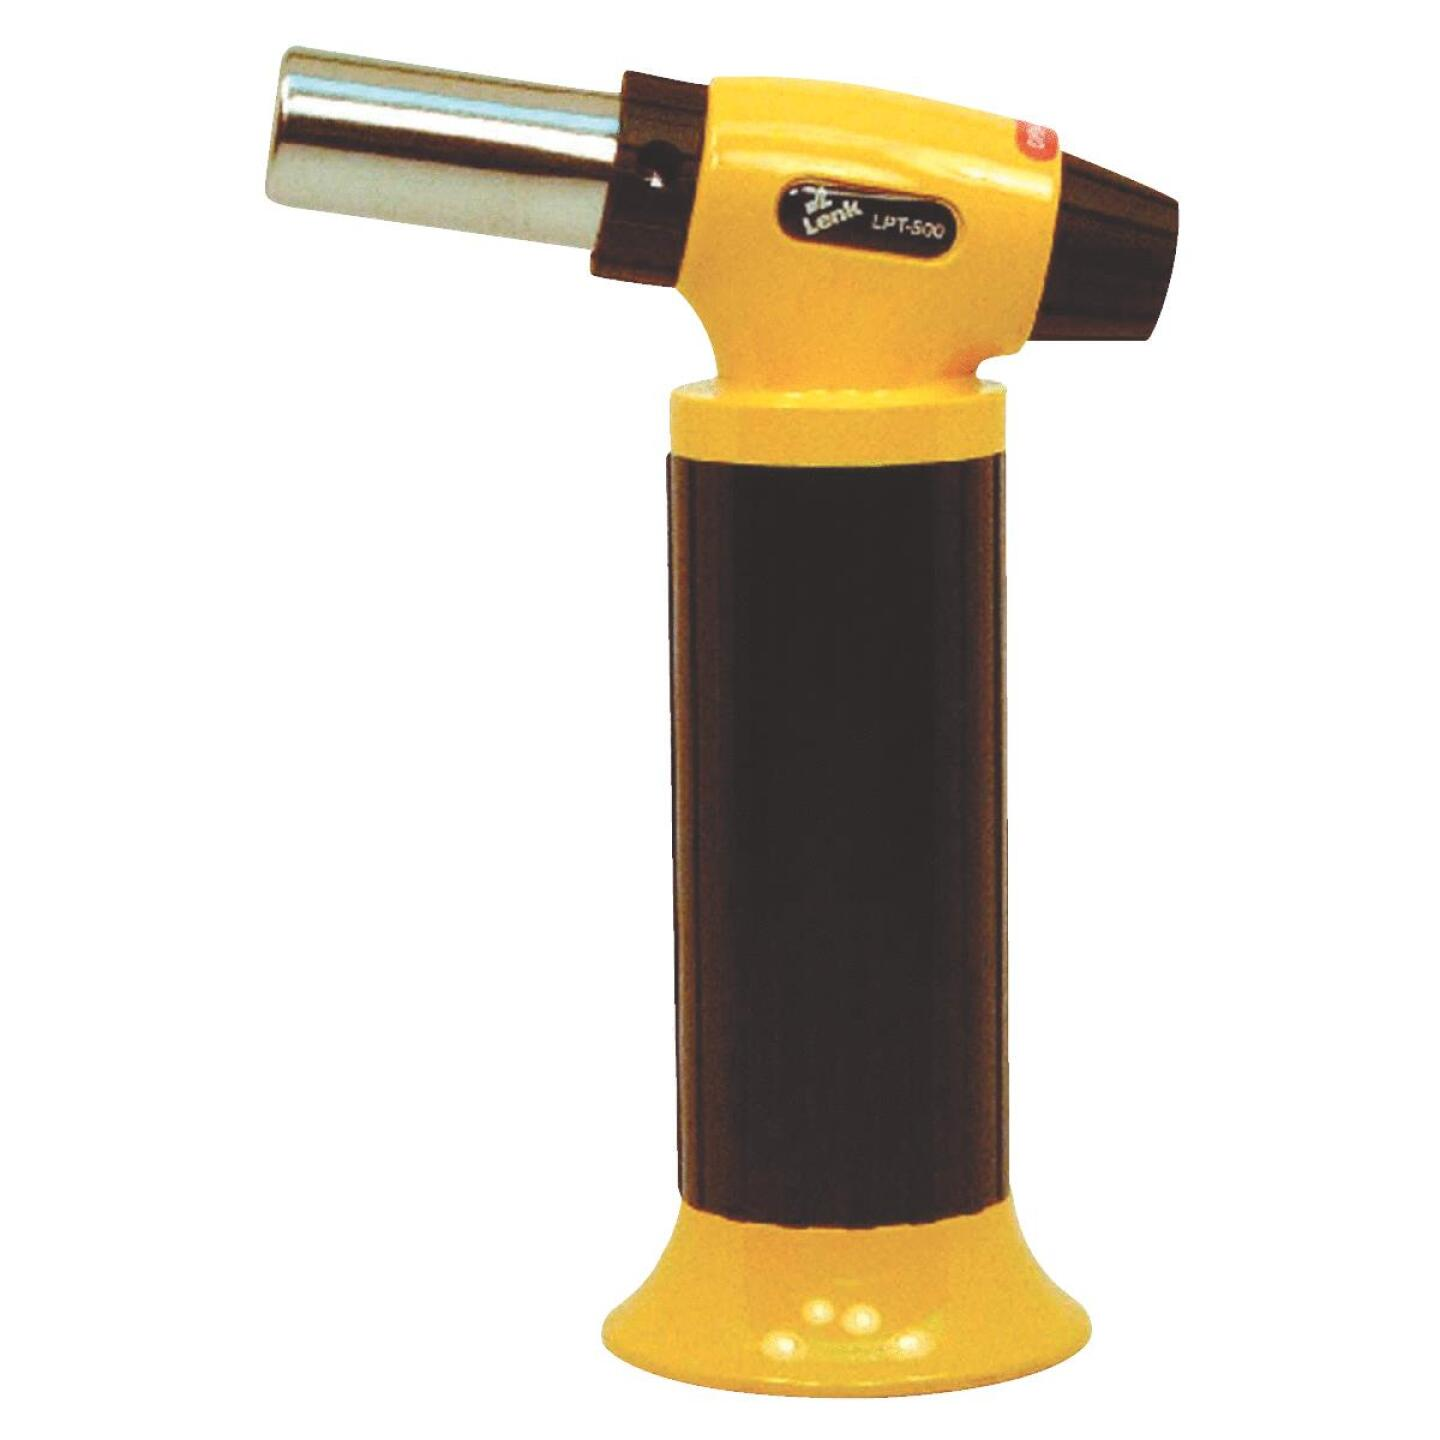 Wall Lenk Pro-Torch 500 Butane Micro Torch Image 1